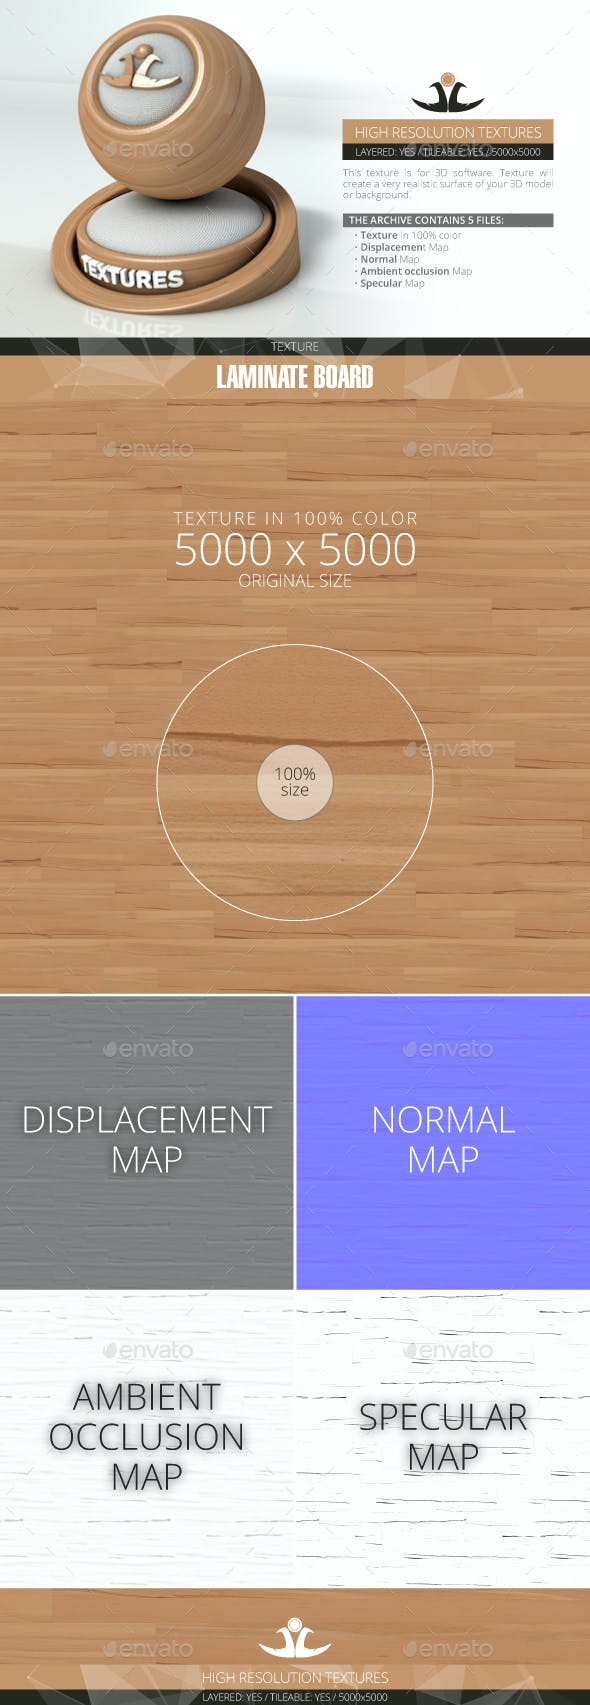 Laminate Board 21 - 3DOcean Item for Sale